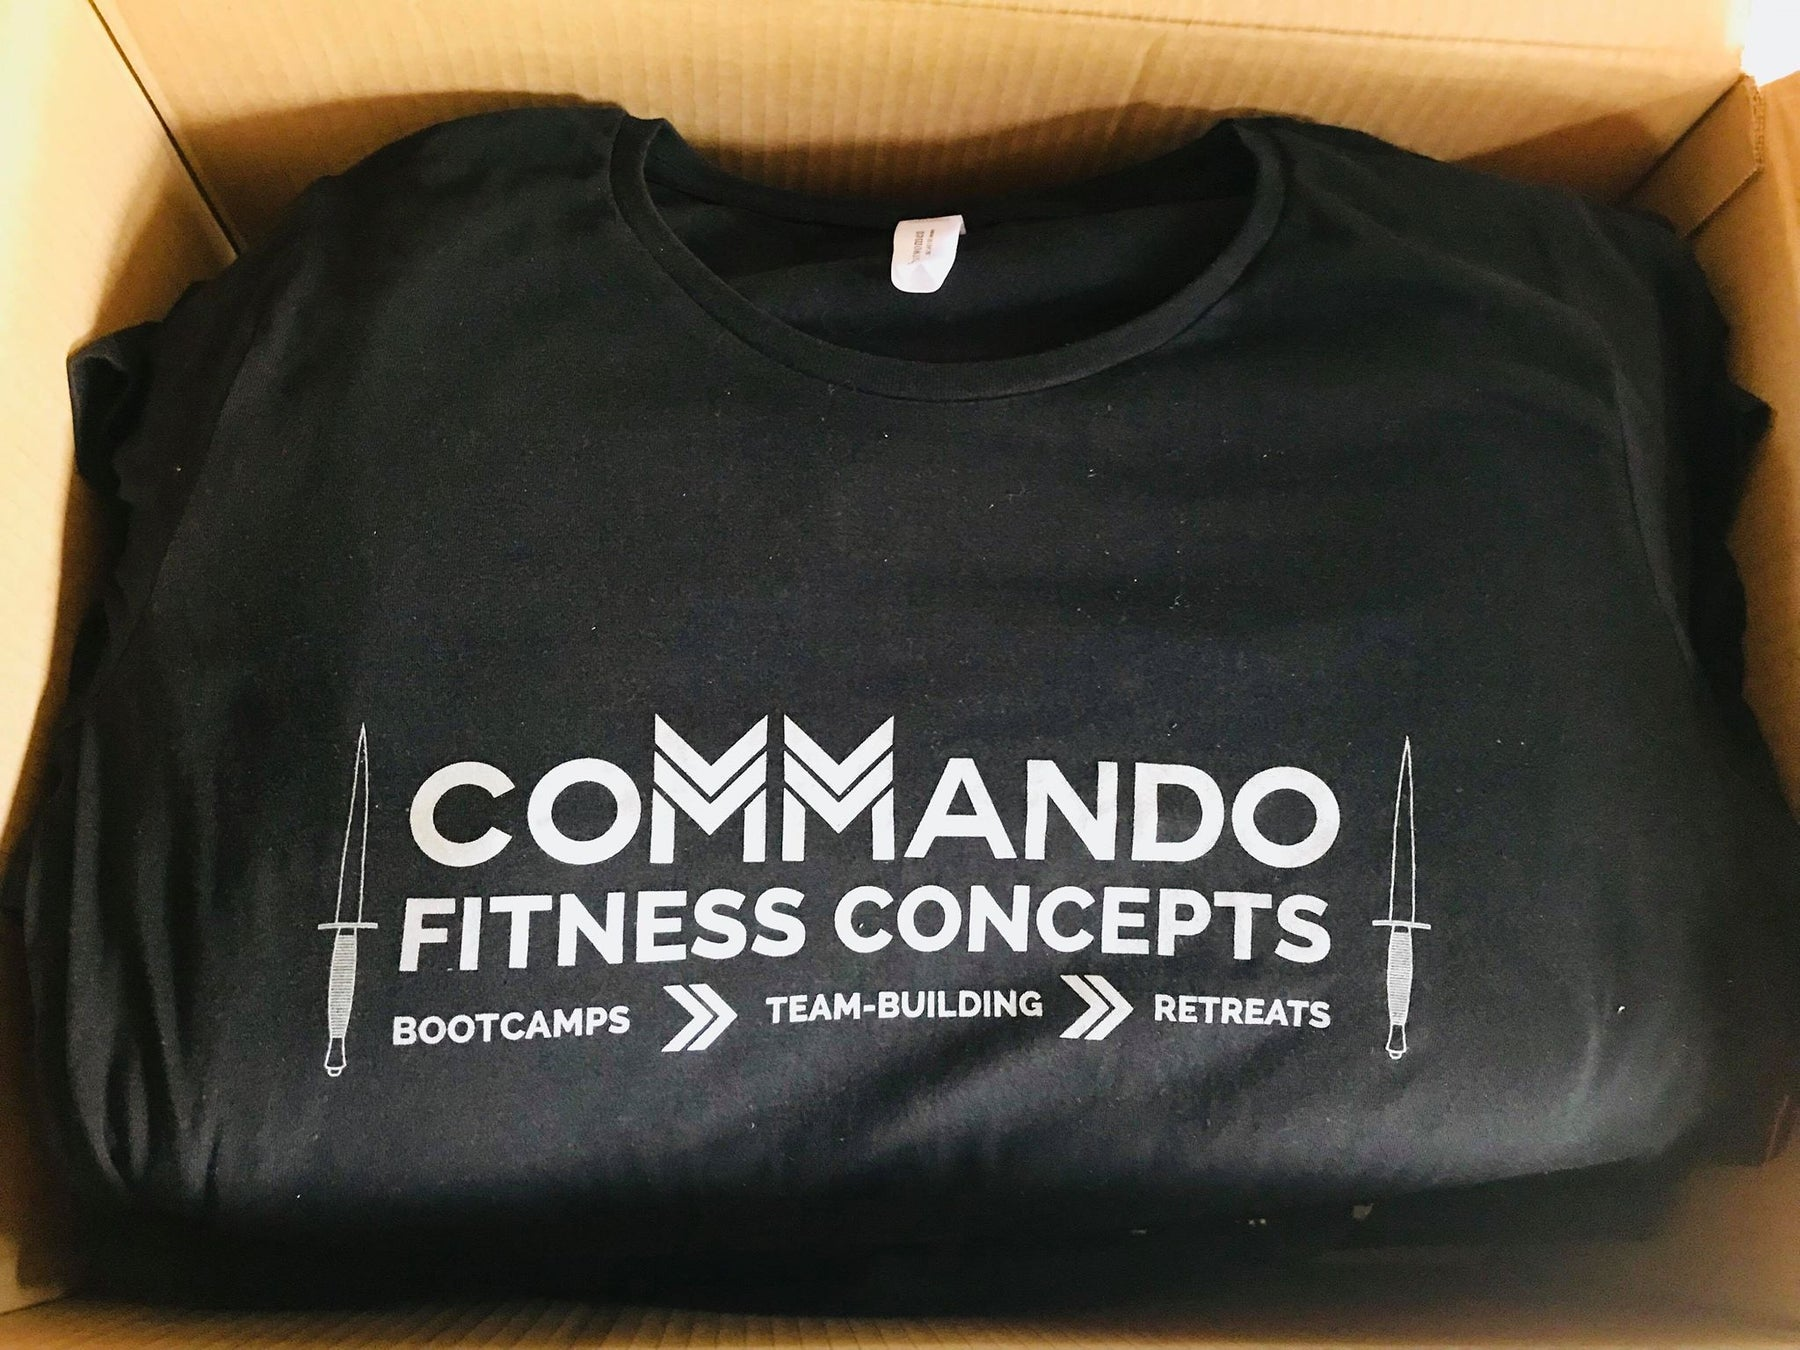 60 Tees Dispatched to Commando Training Firm